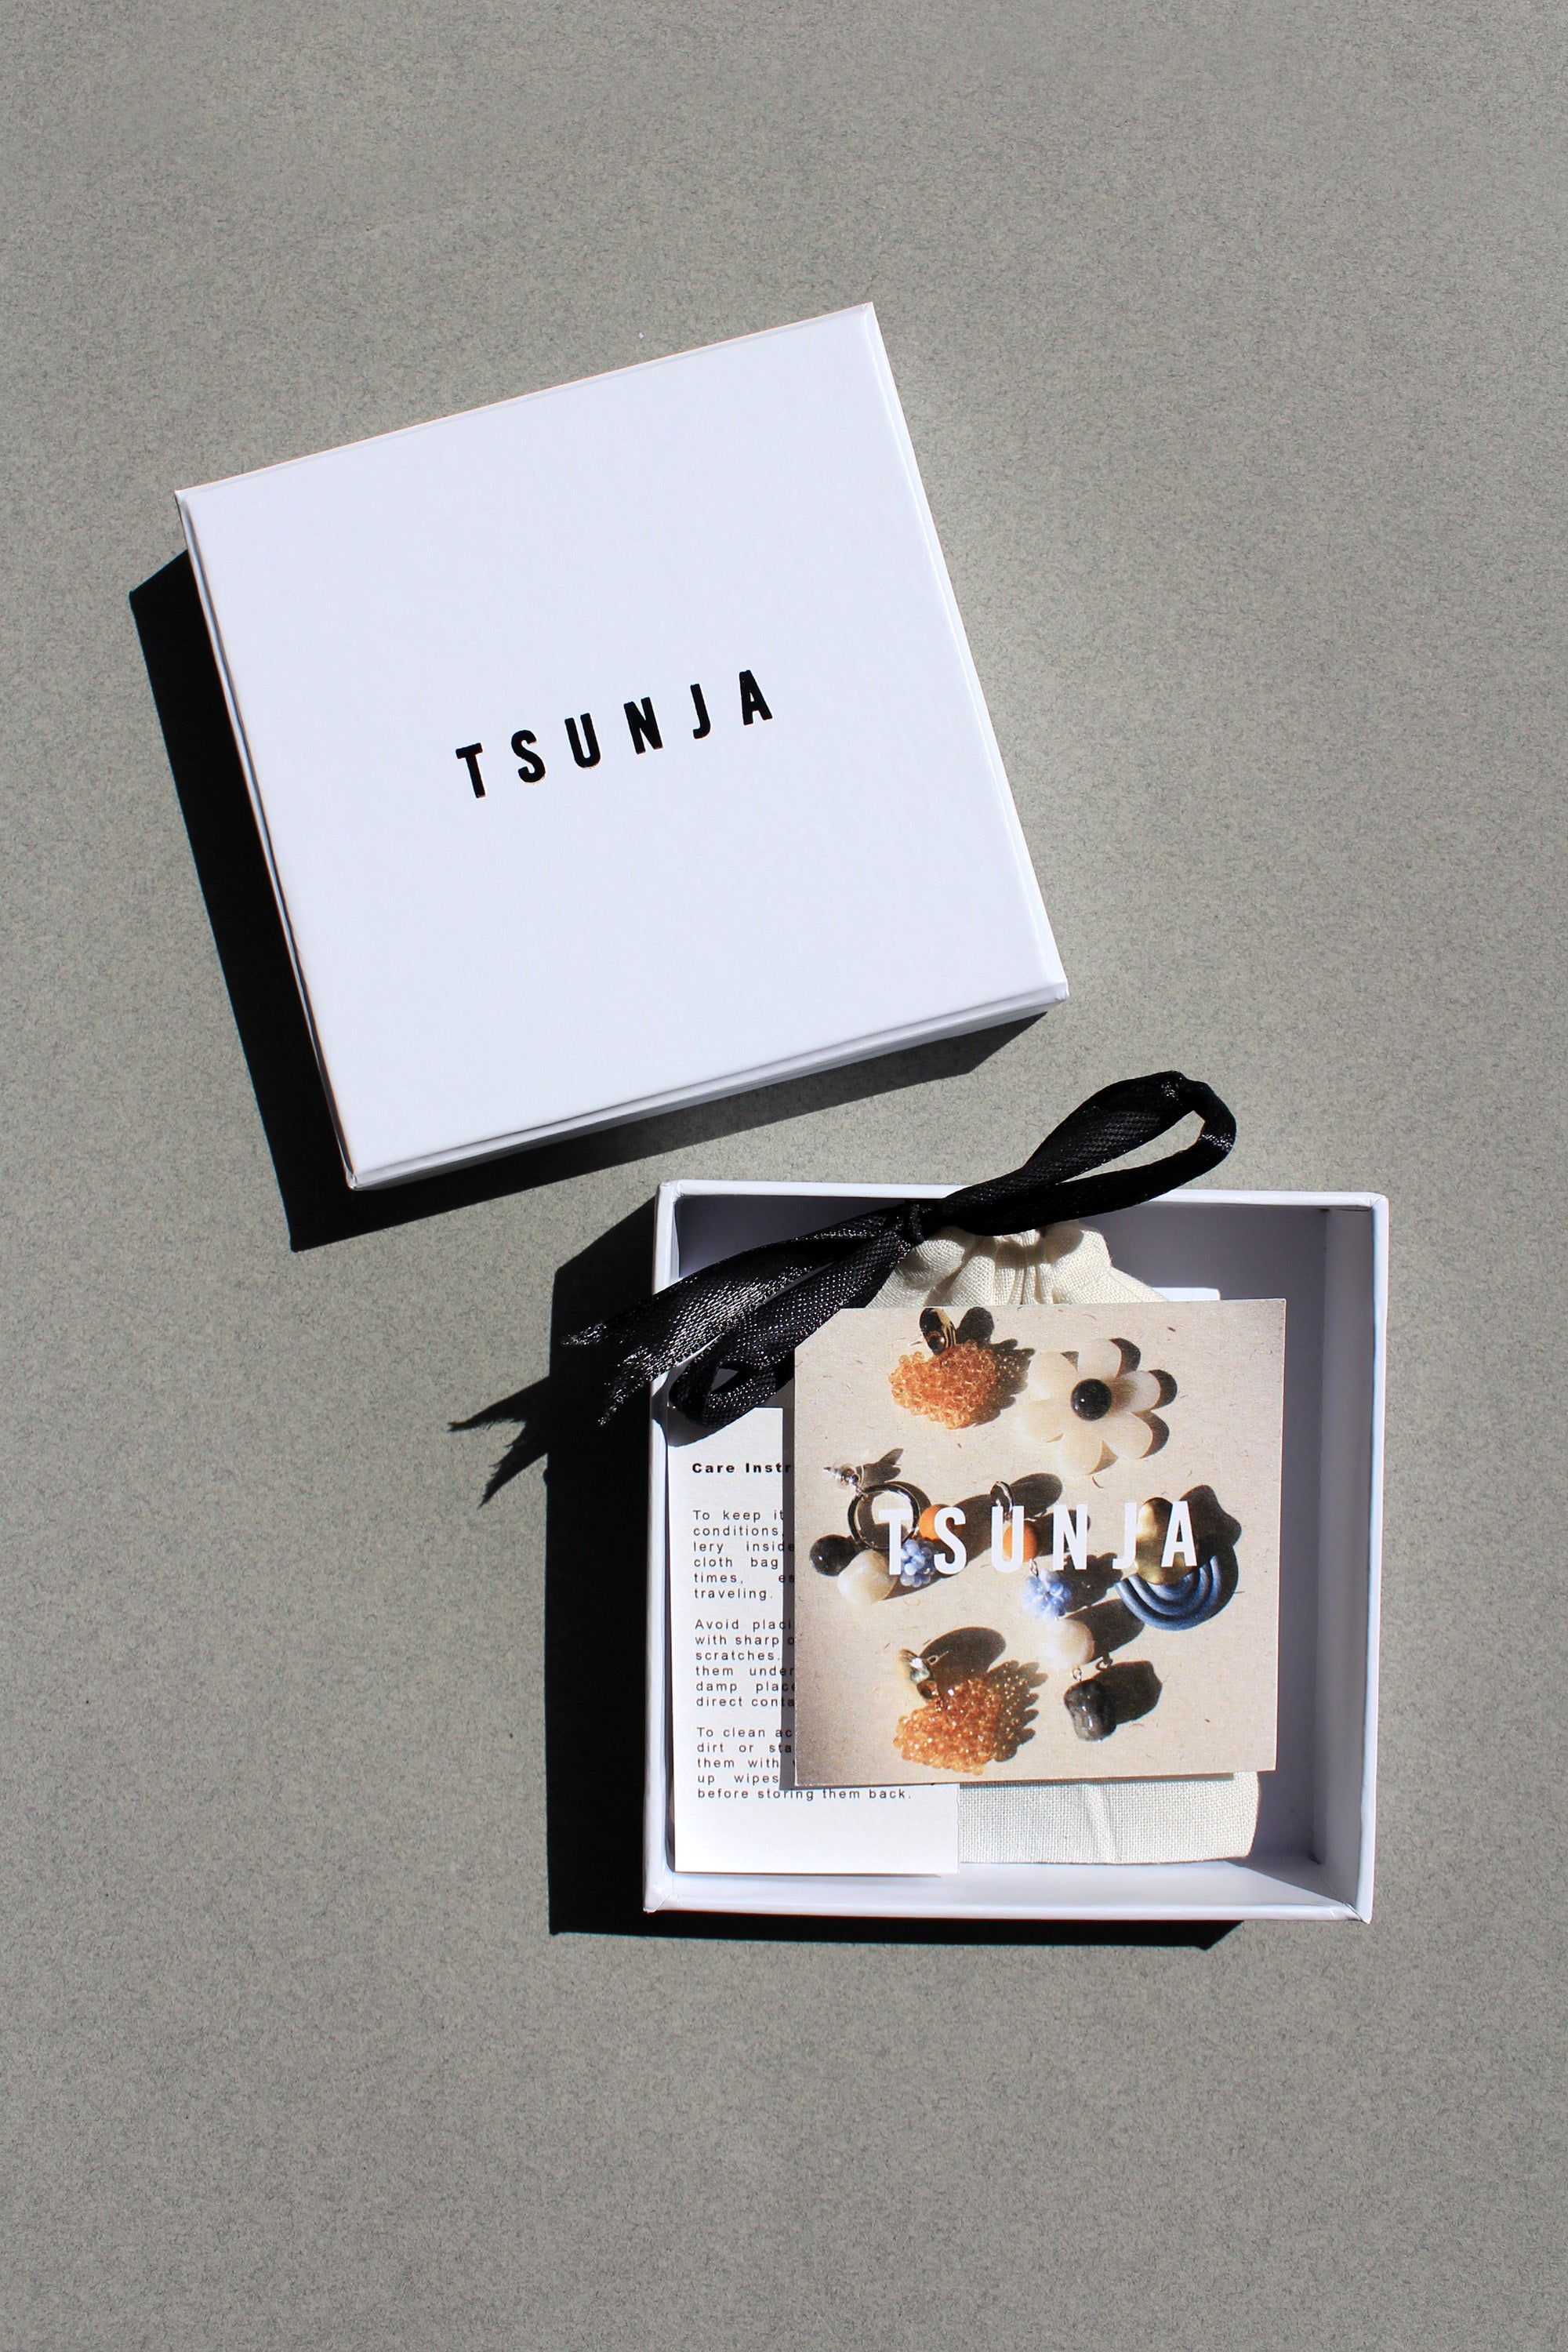 Tsunja box packaging with brand card, care instruction and pouch